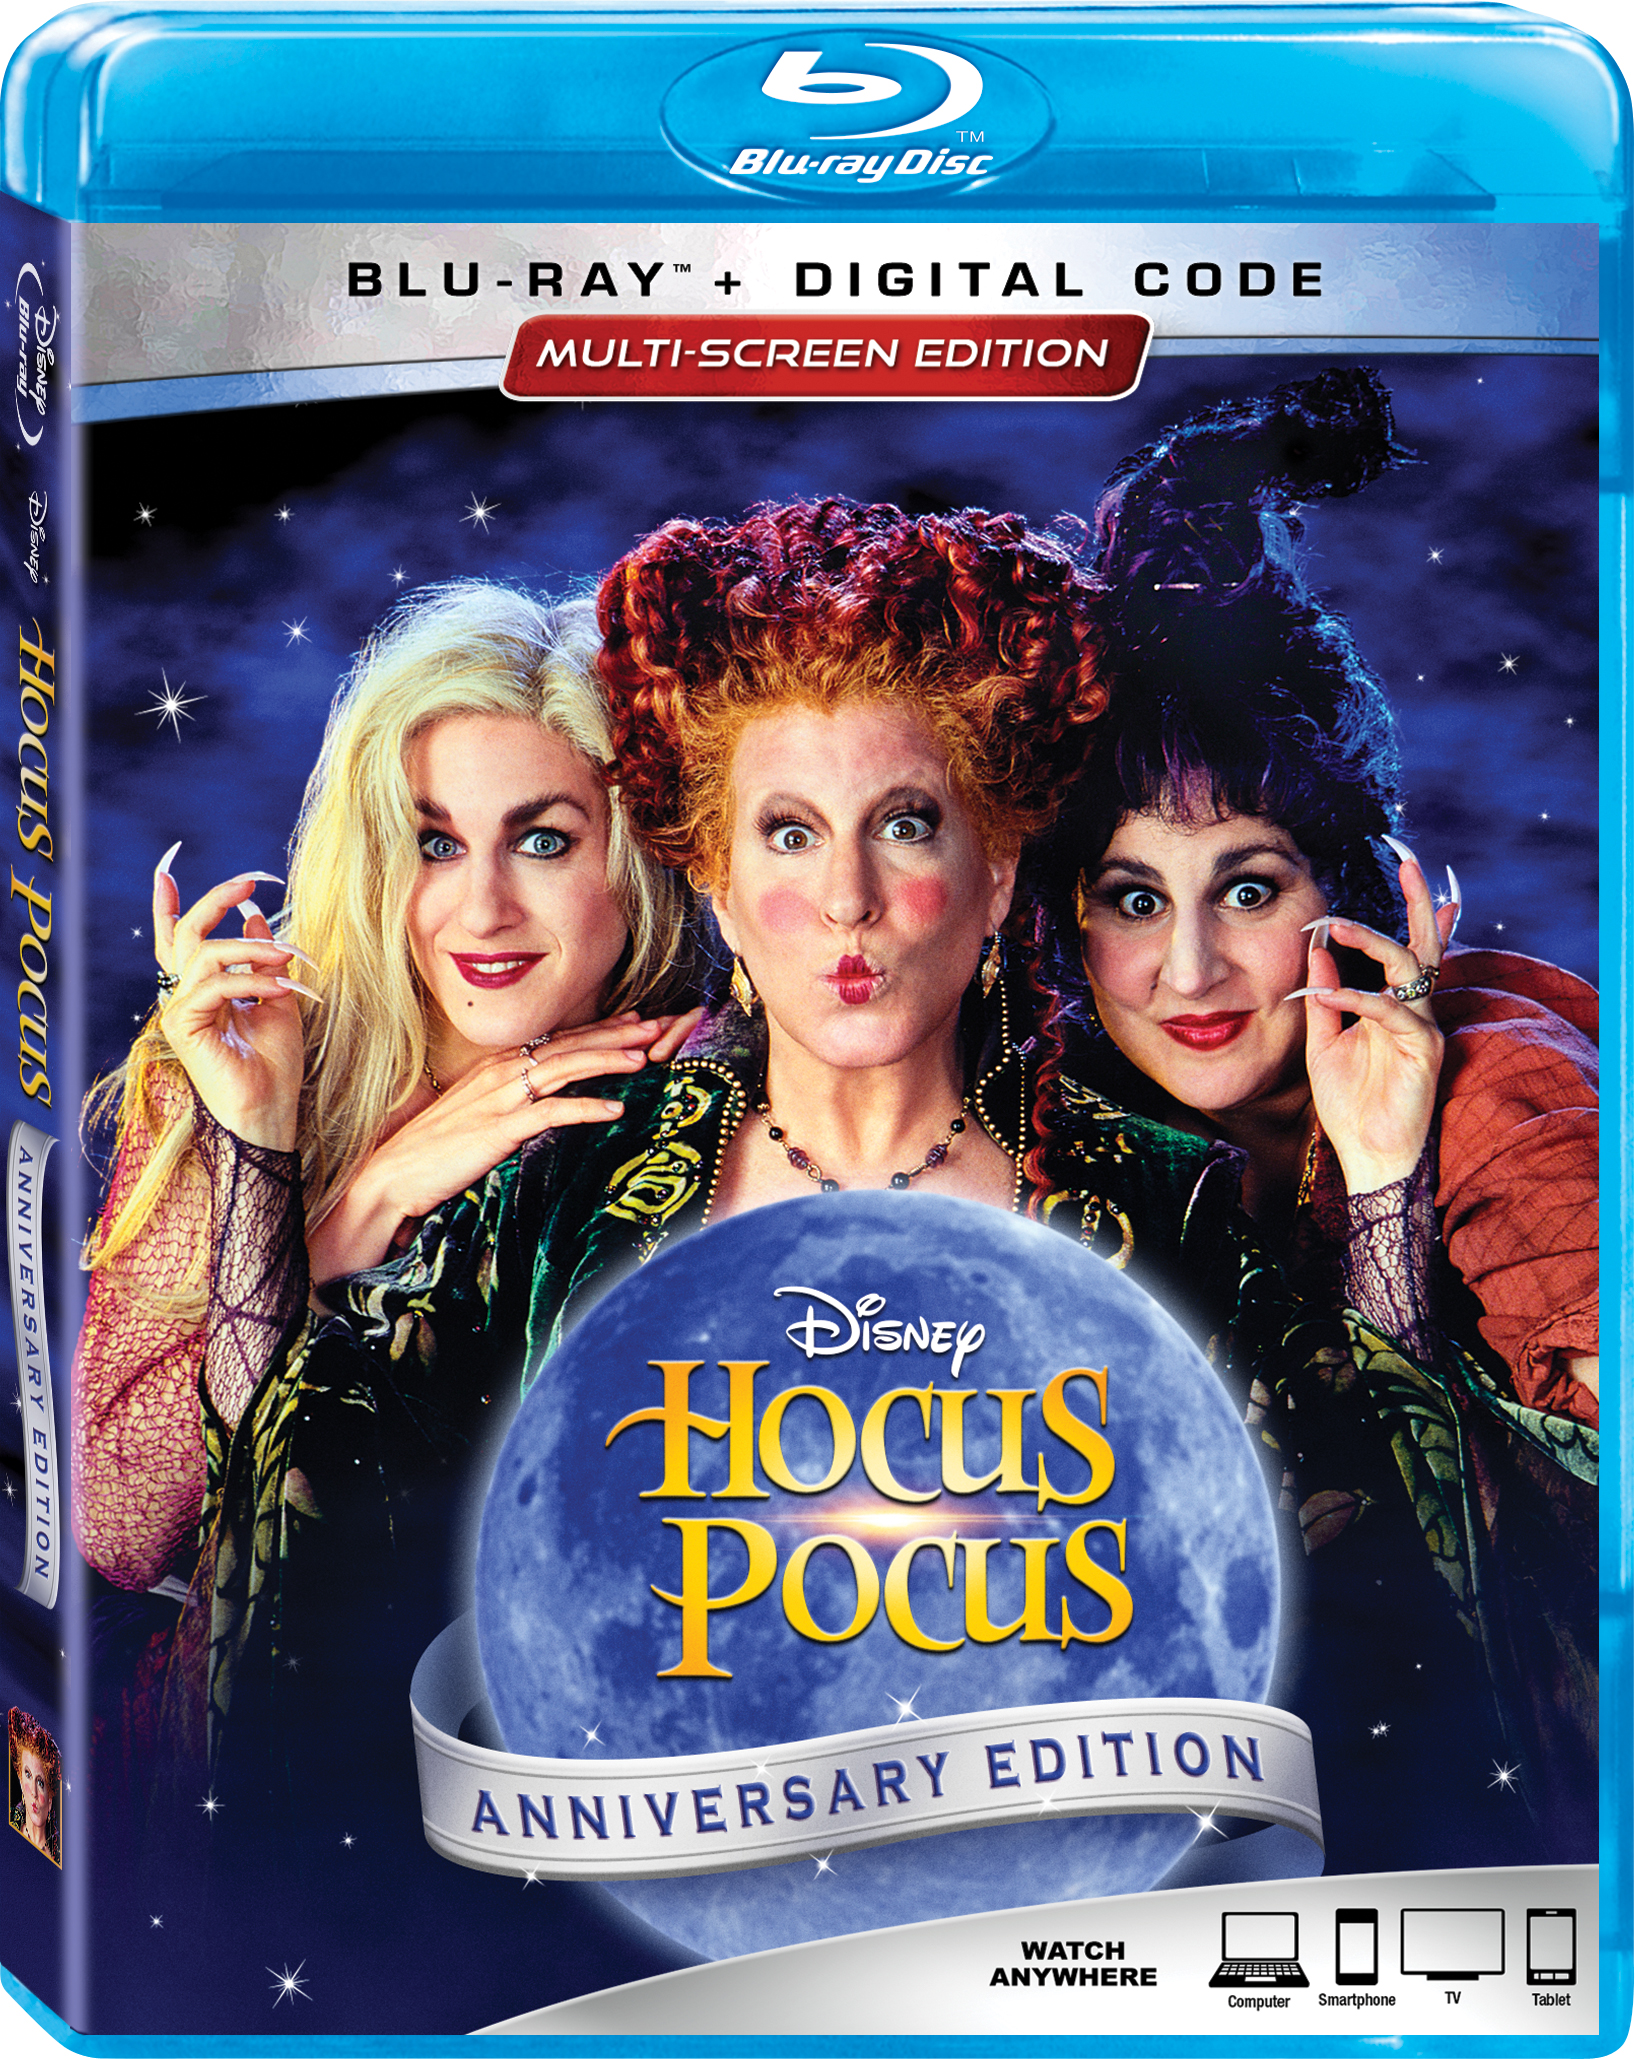 Hocus Pocus (1993) 720p BluRay x264 ESubs AC3 Dual Audio [Hindi DD2.0 + English DD2.0]